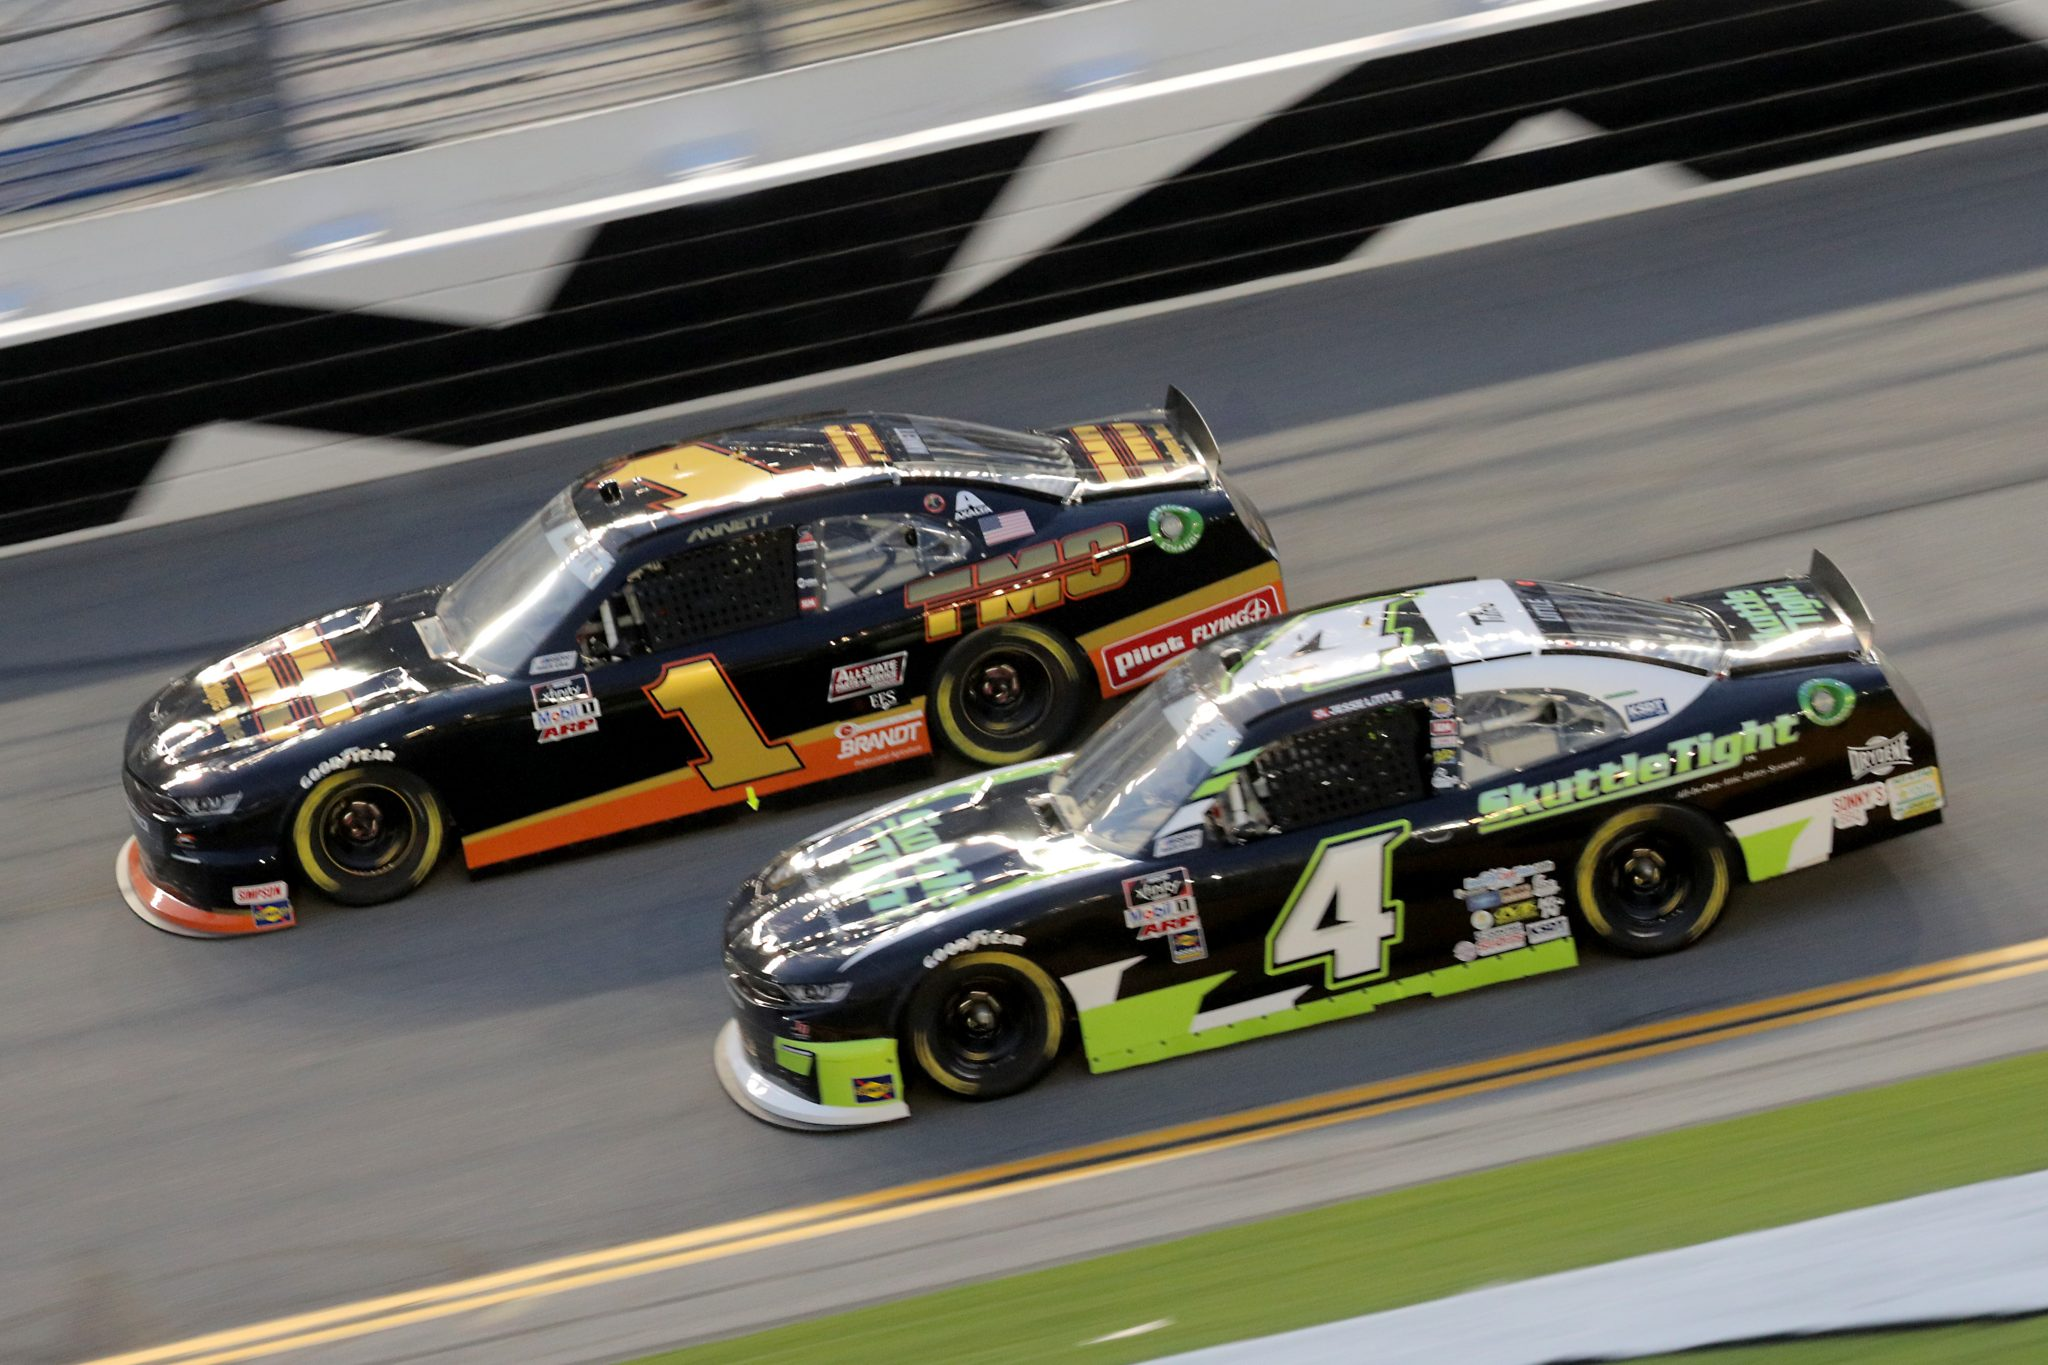 DAYTONA BEACH, FLORIDA - AUGUST 28: Michael Annett, driver of the #1 TMC Chevrolet, and Jesse Little, driver of the #4 Skuttletight Chevrolet, race during the NASCAR Xfinity Series Wawa 250 Powered by Coca-Cola at Daytona International Speedway on August 28, 2020 in Daytona Beach, Florida. (Photo by Chris Graythen/Getty Images) | Getty Images